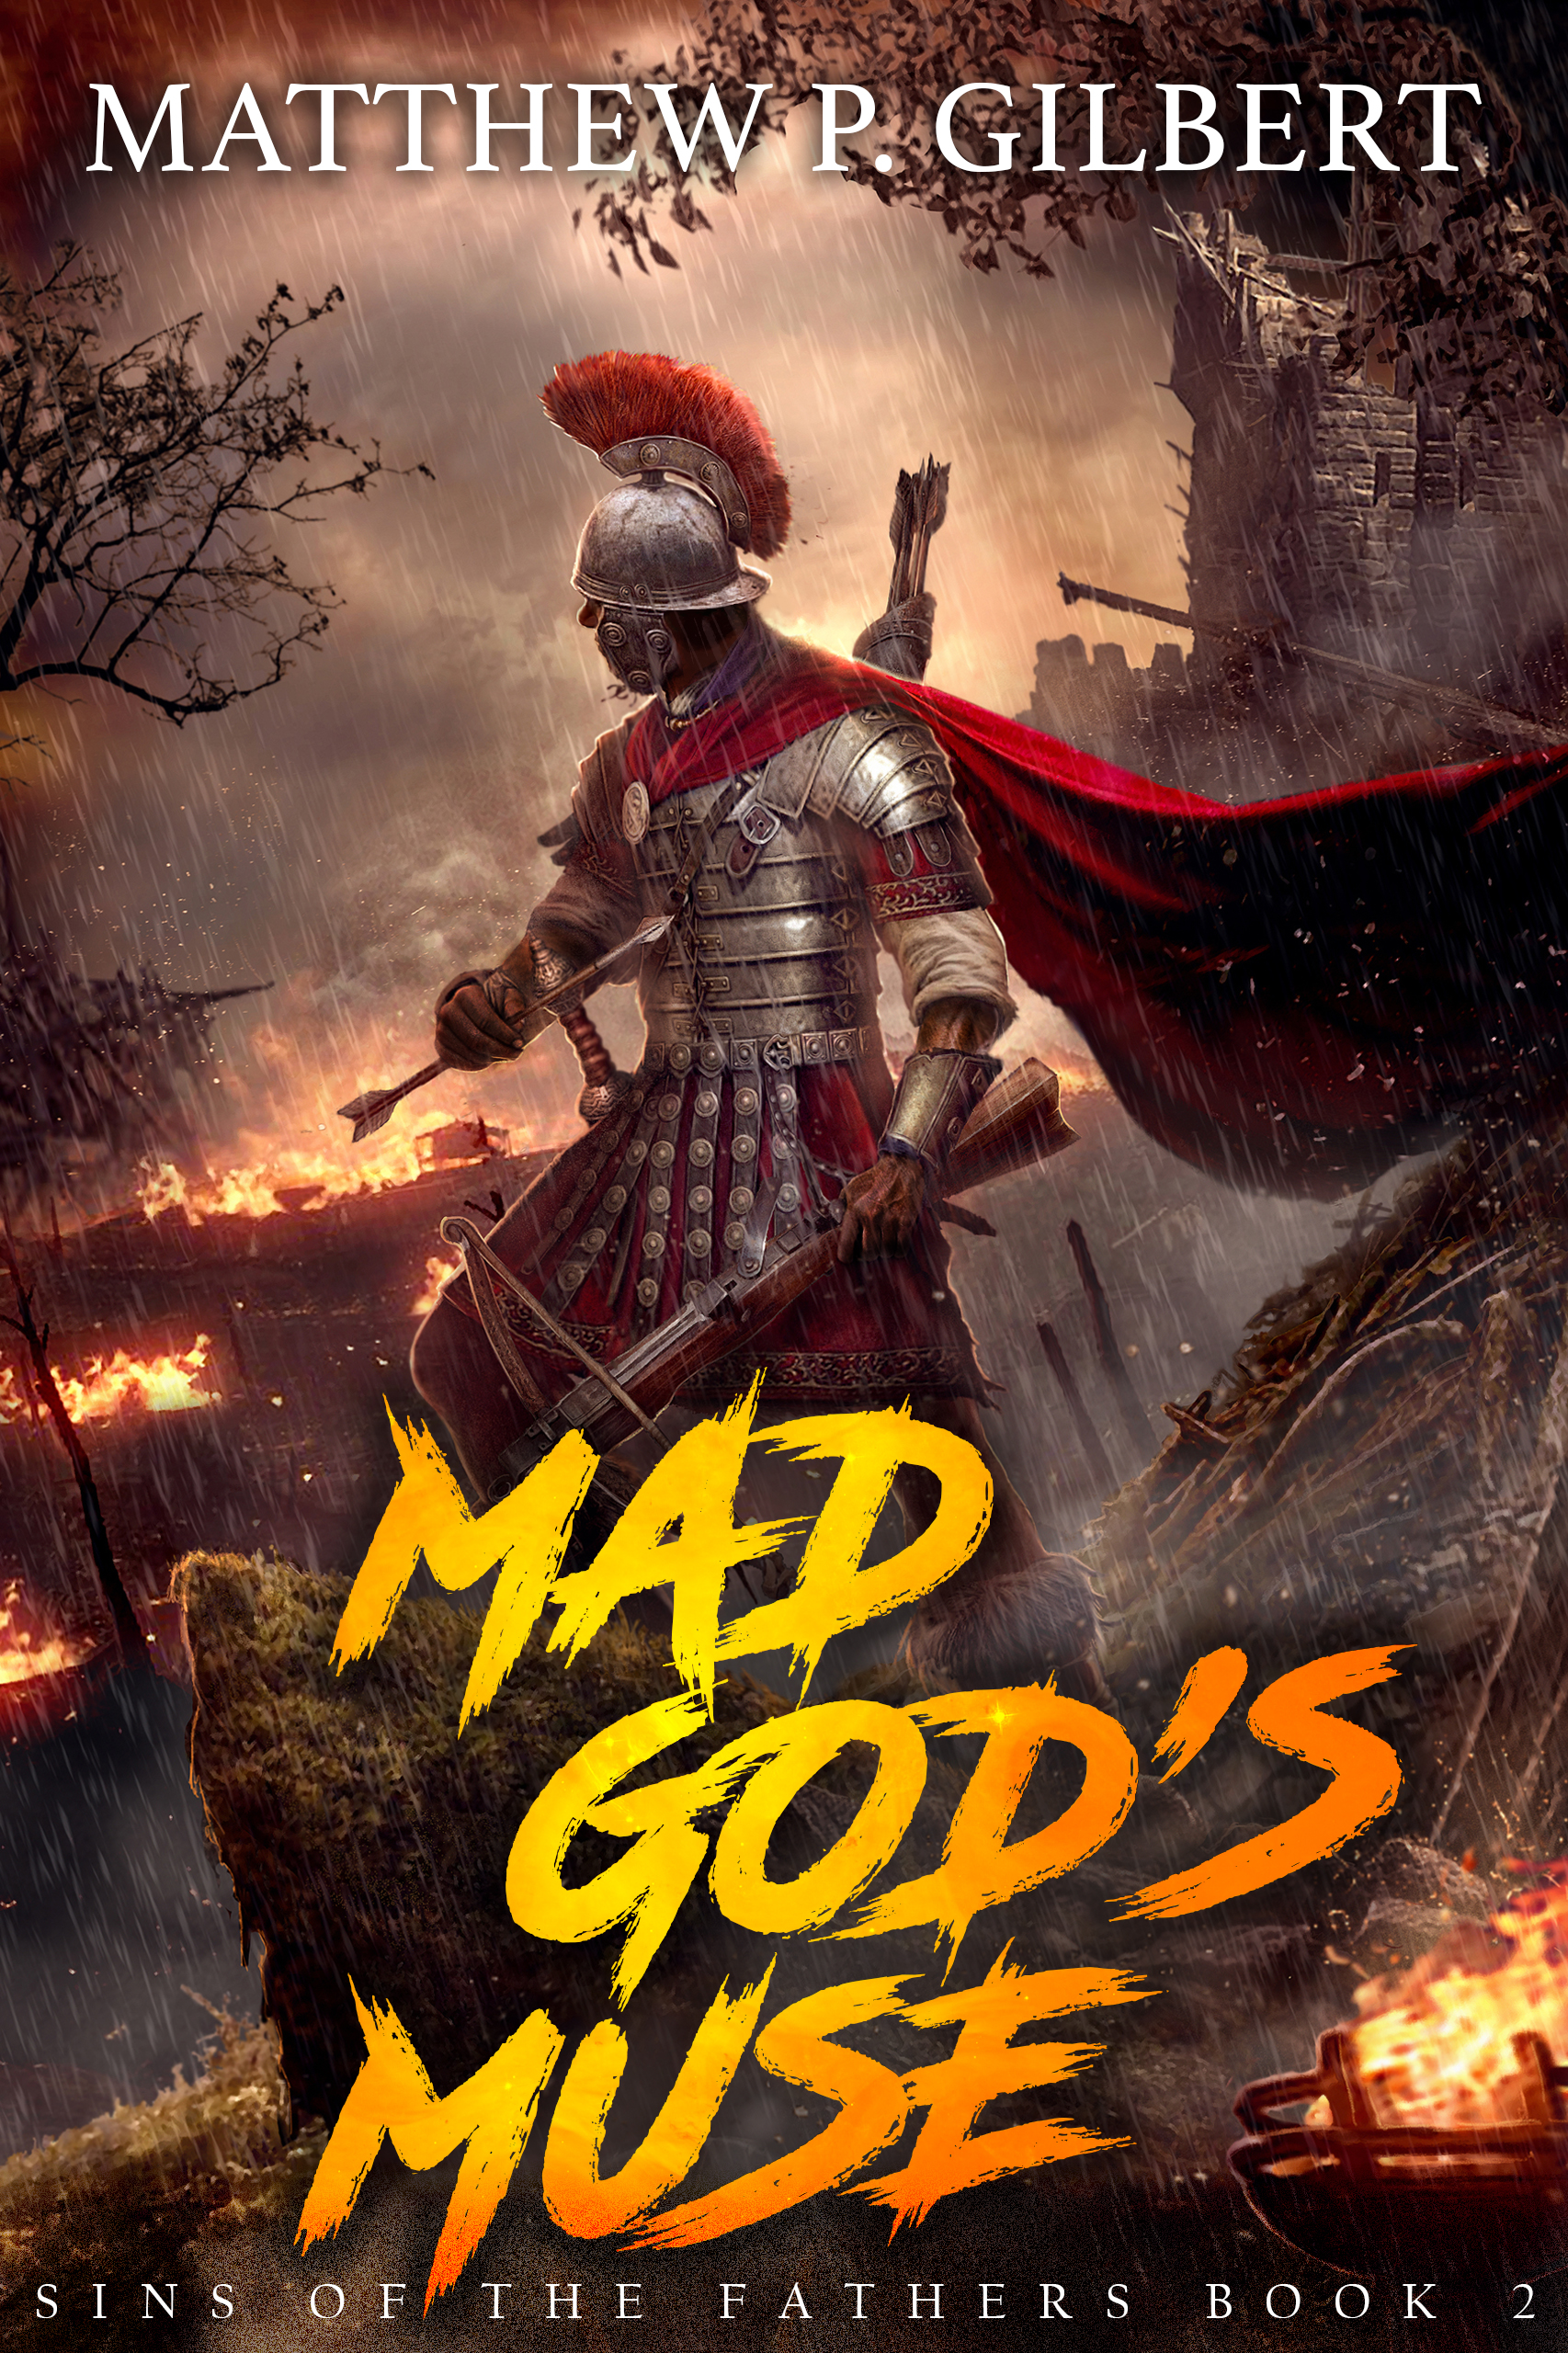 Mad God's Muse   Sins of the Fathers Book 2  Matthew P. Gilbert